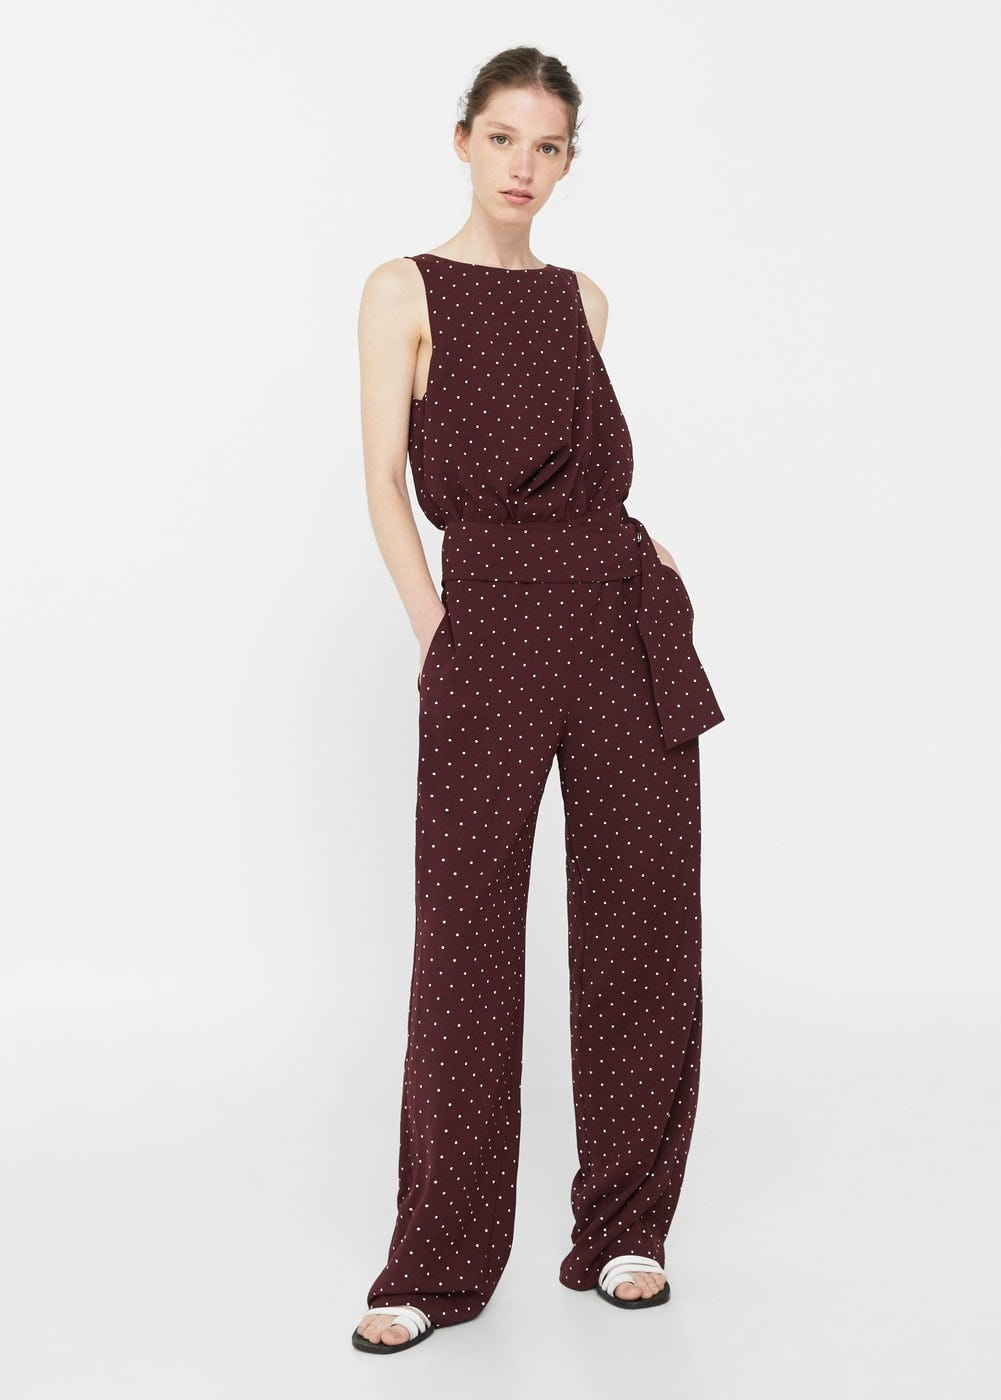 042af96096a5 How To Wear Jumpsuits In Office